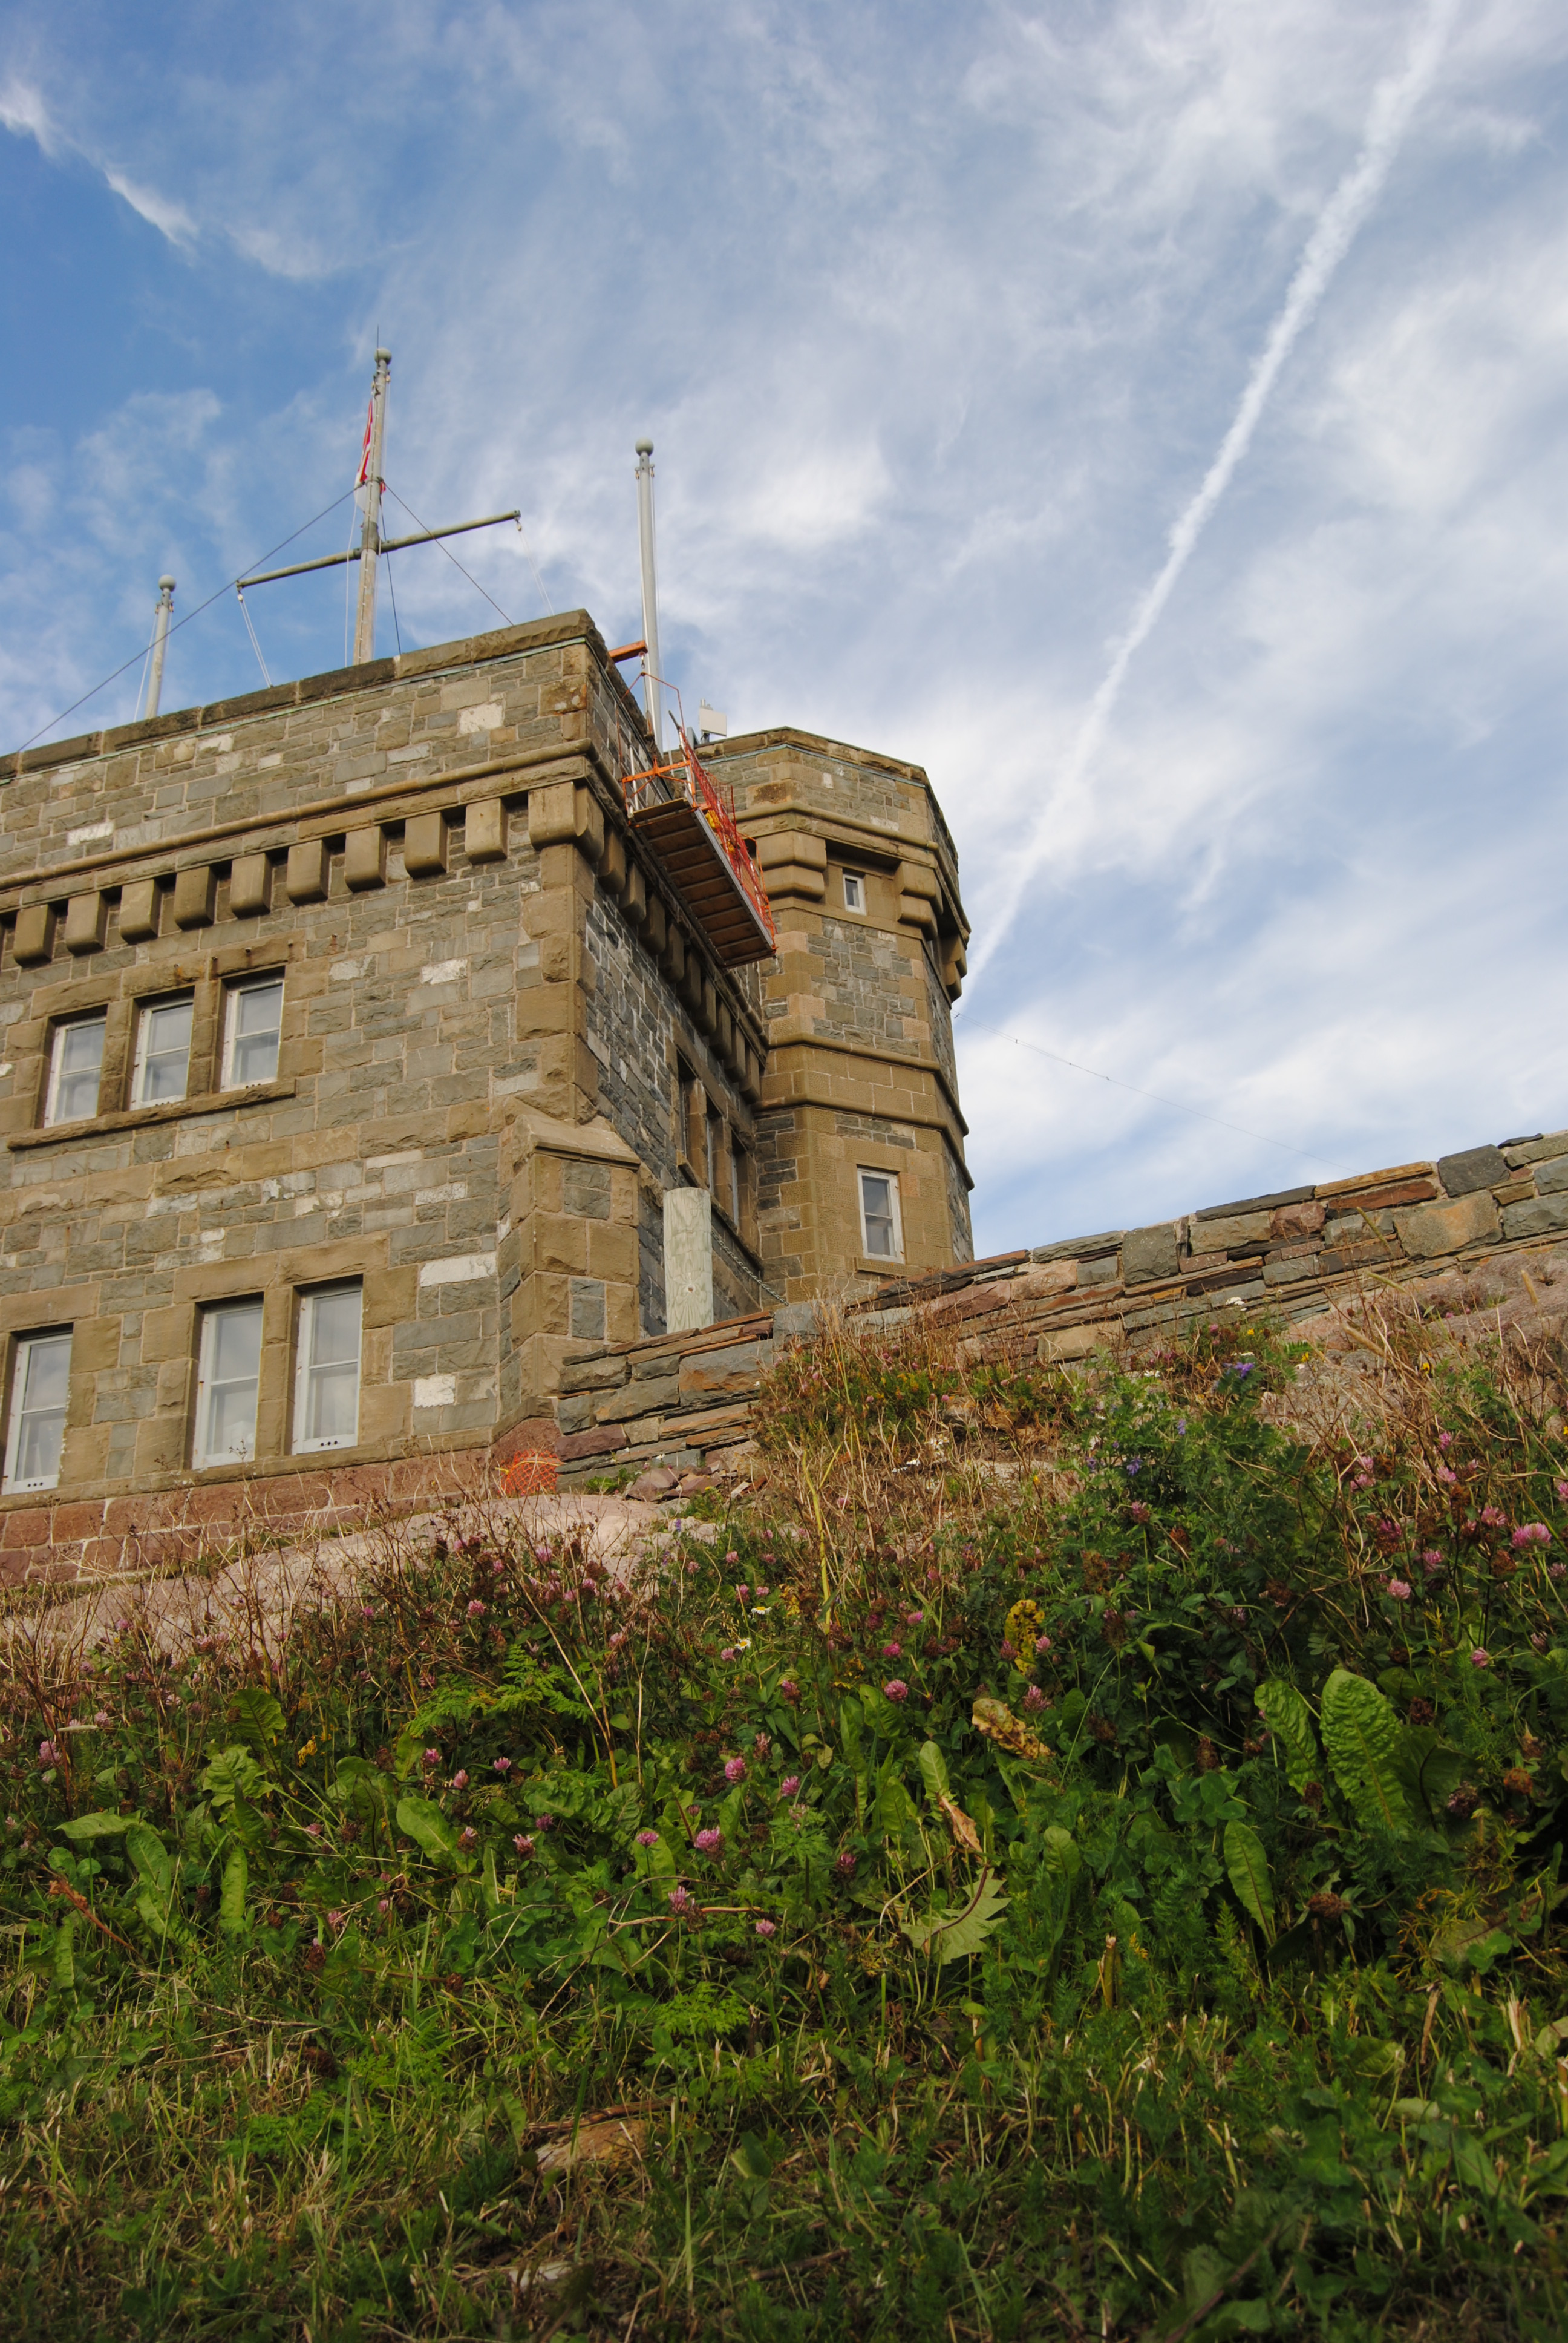 Cabot tower on Signal Hill, Nfld.